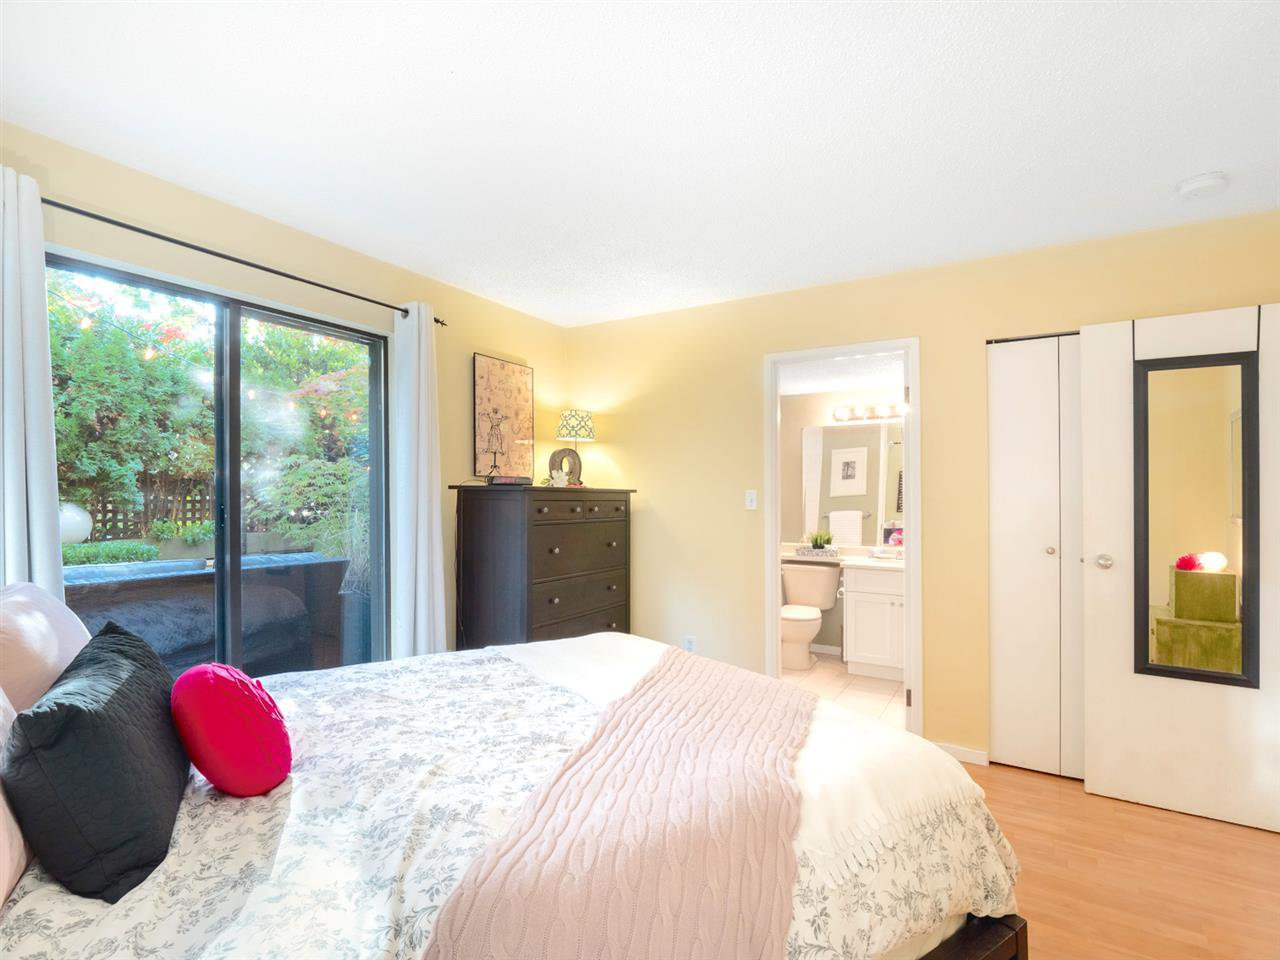 Photo 9: Photos: 101 8645 OSLER Street in Vancouver: Marpole Condo for sale (Vancouver West)  : MLS®# R2311470